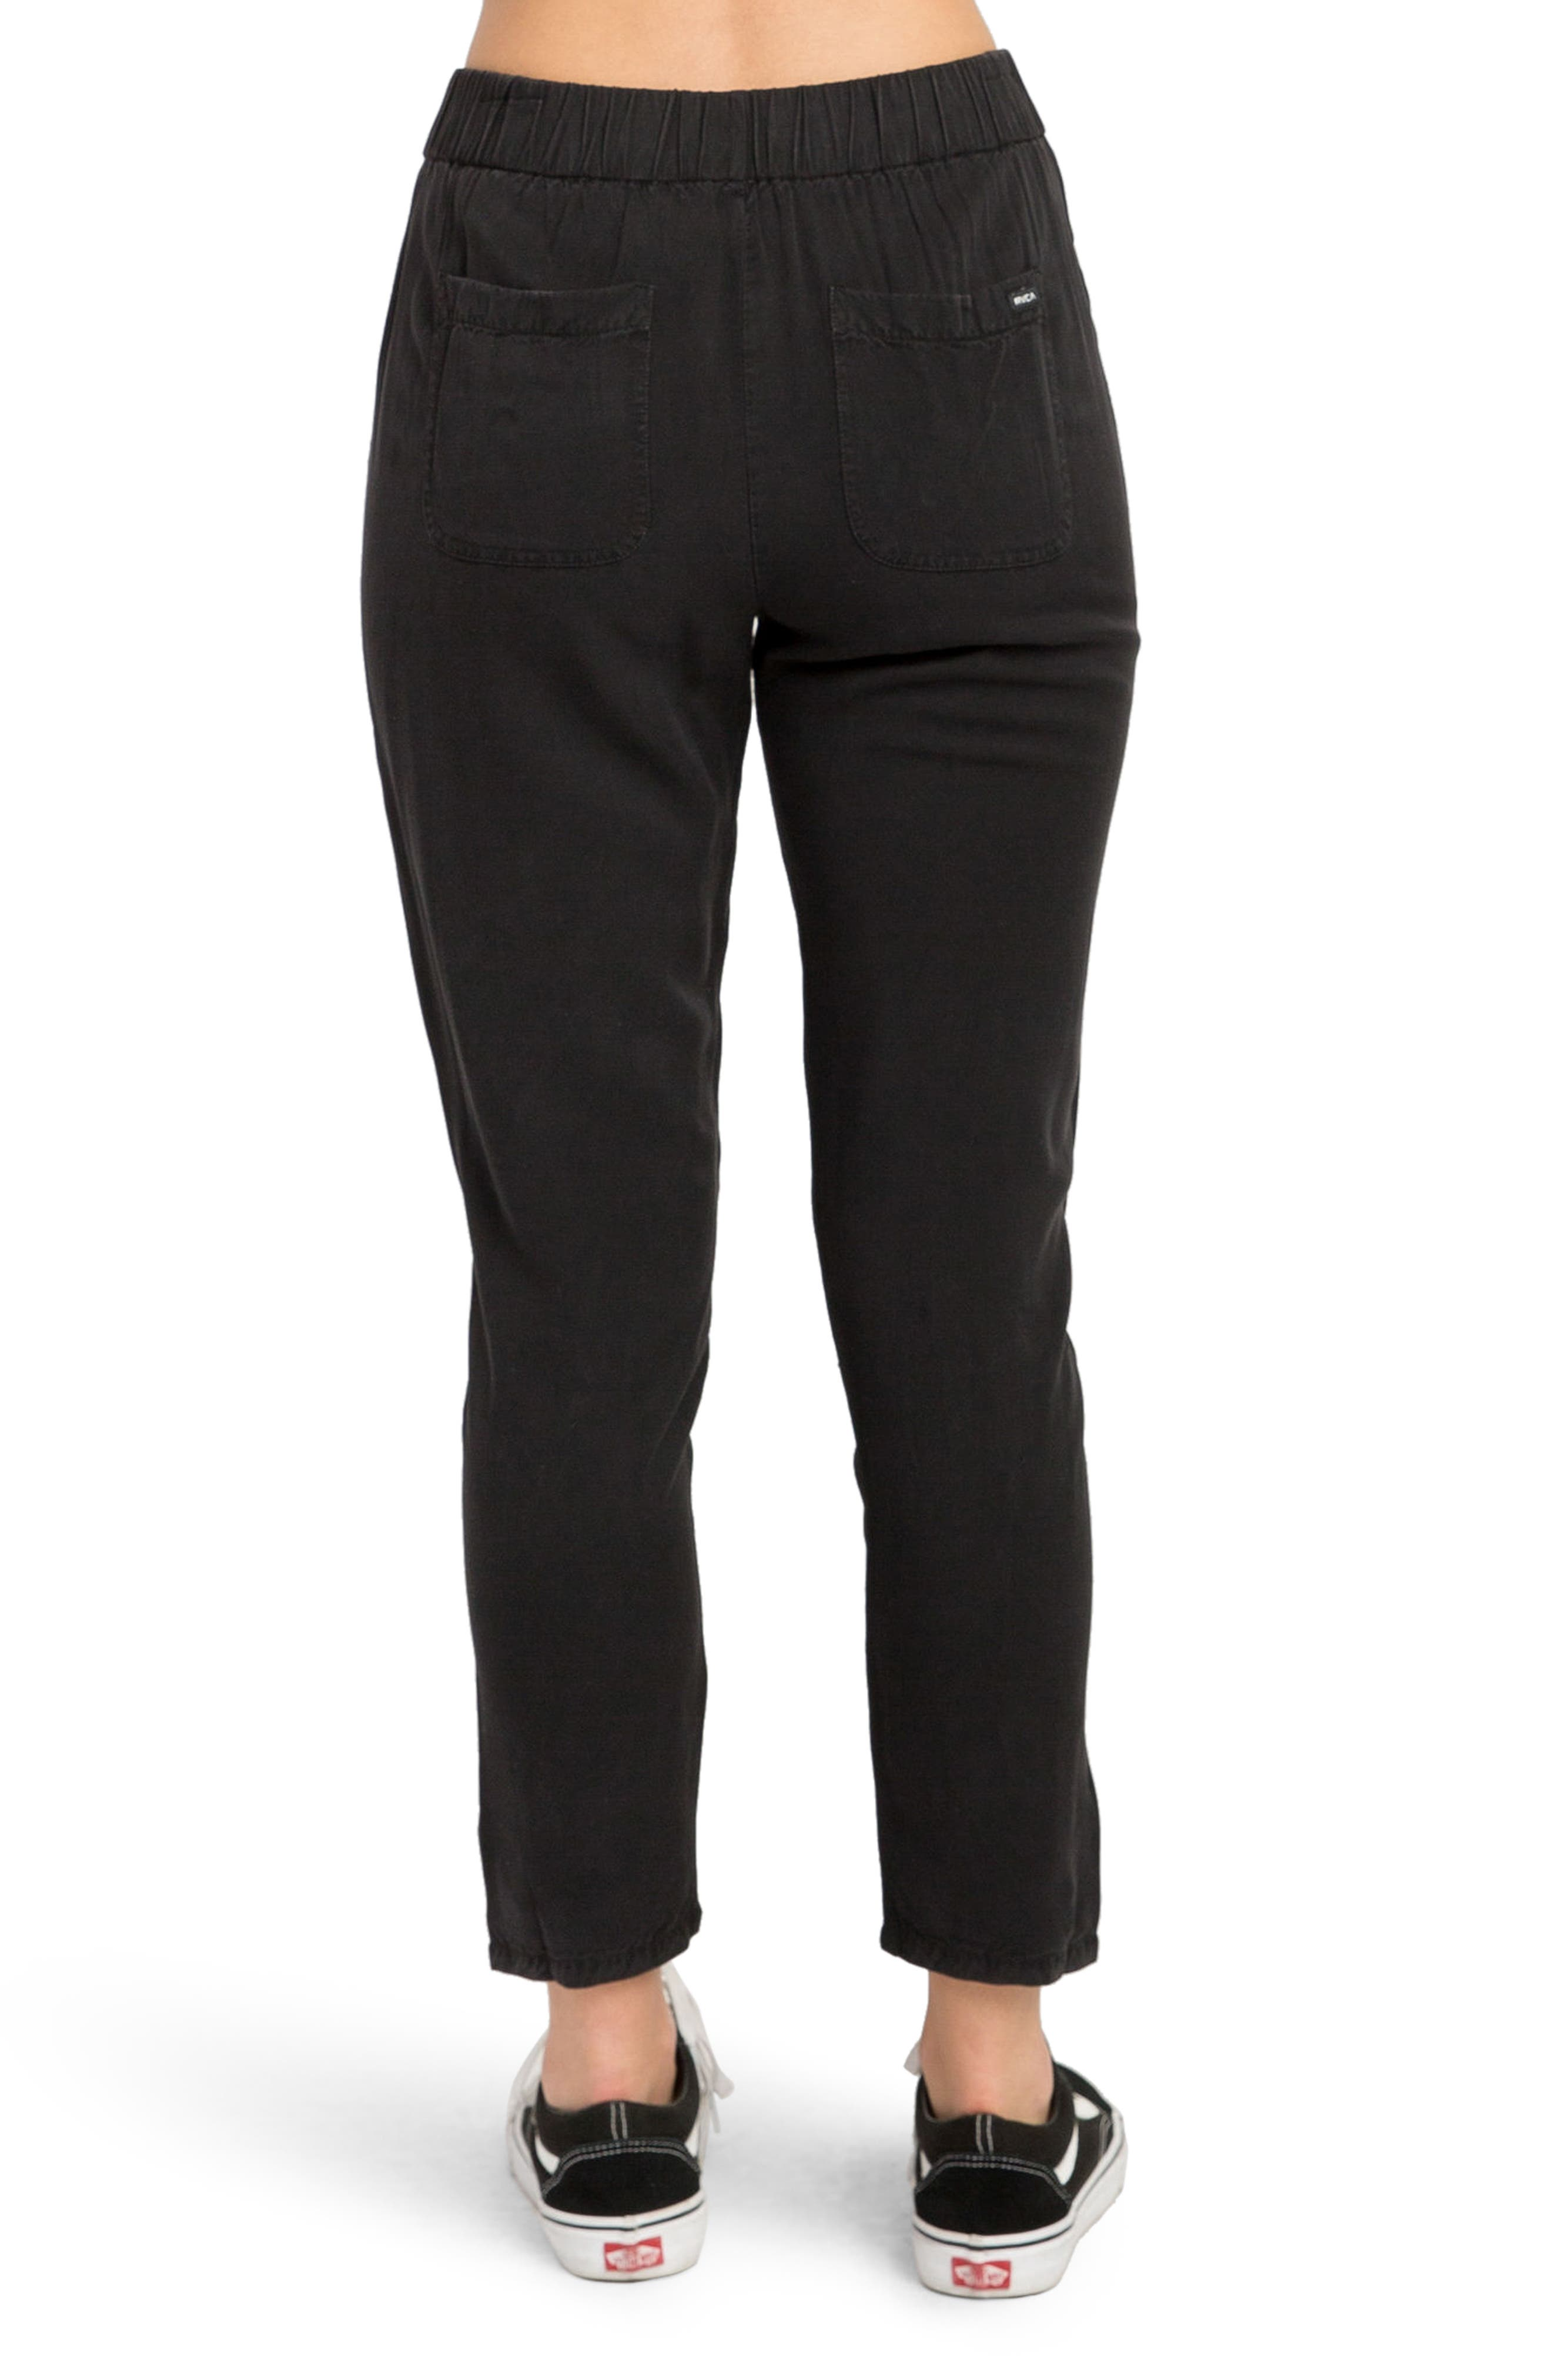 Chill Vibes Ankle Pants,                             Alternate thumbnail 2, color,                             001